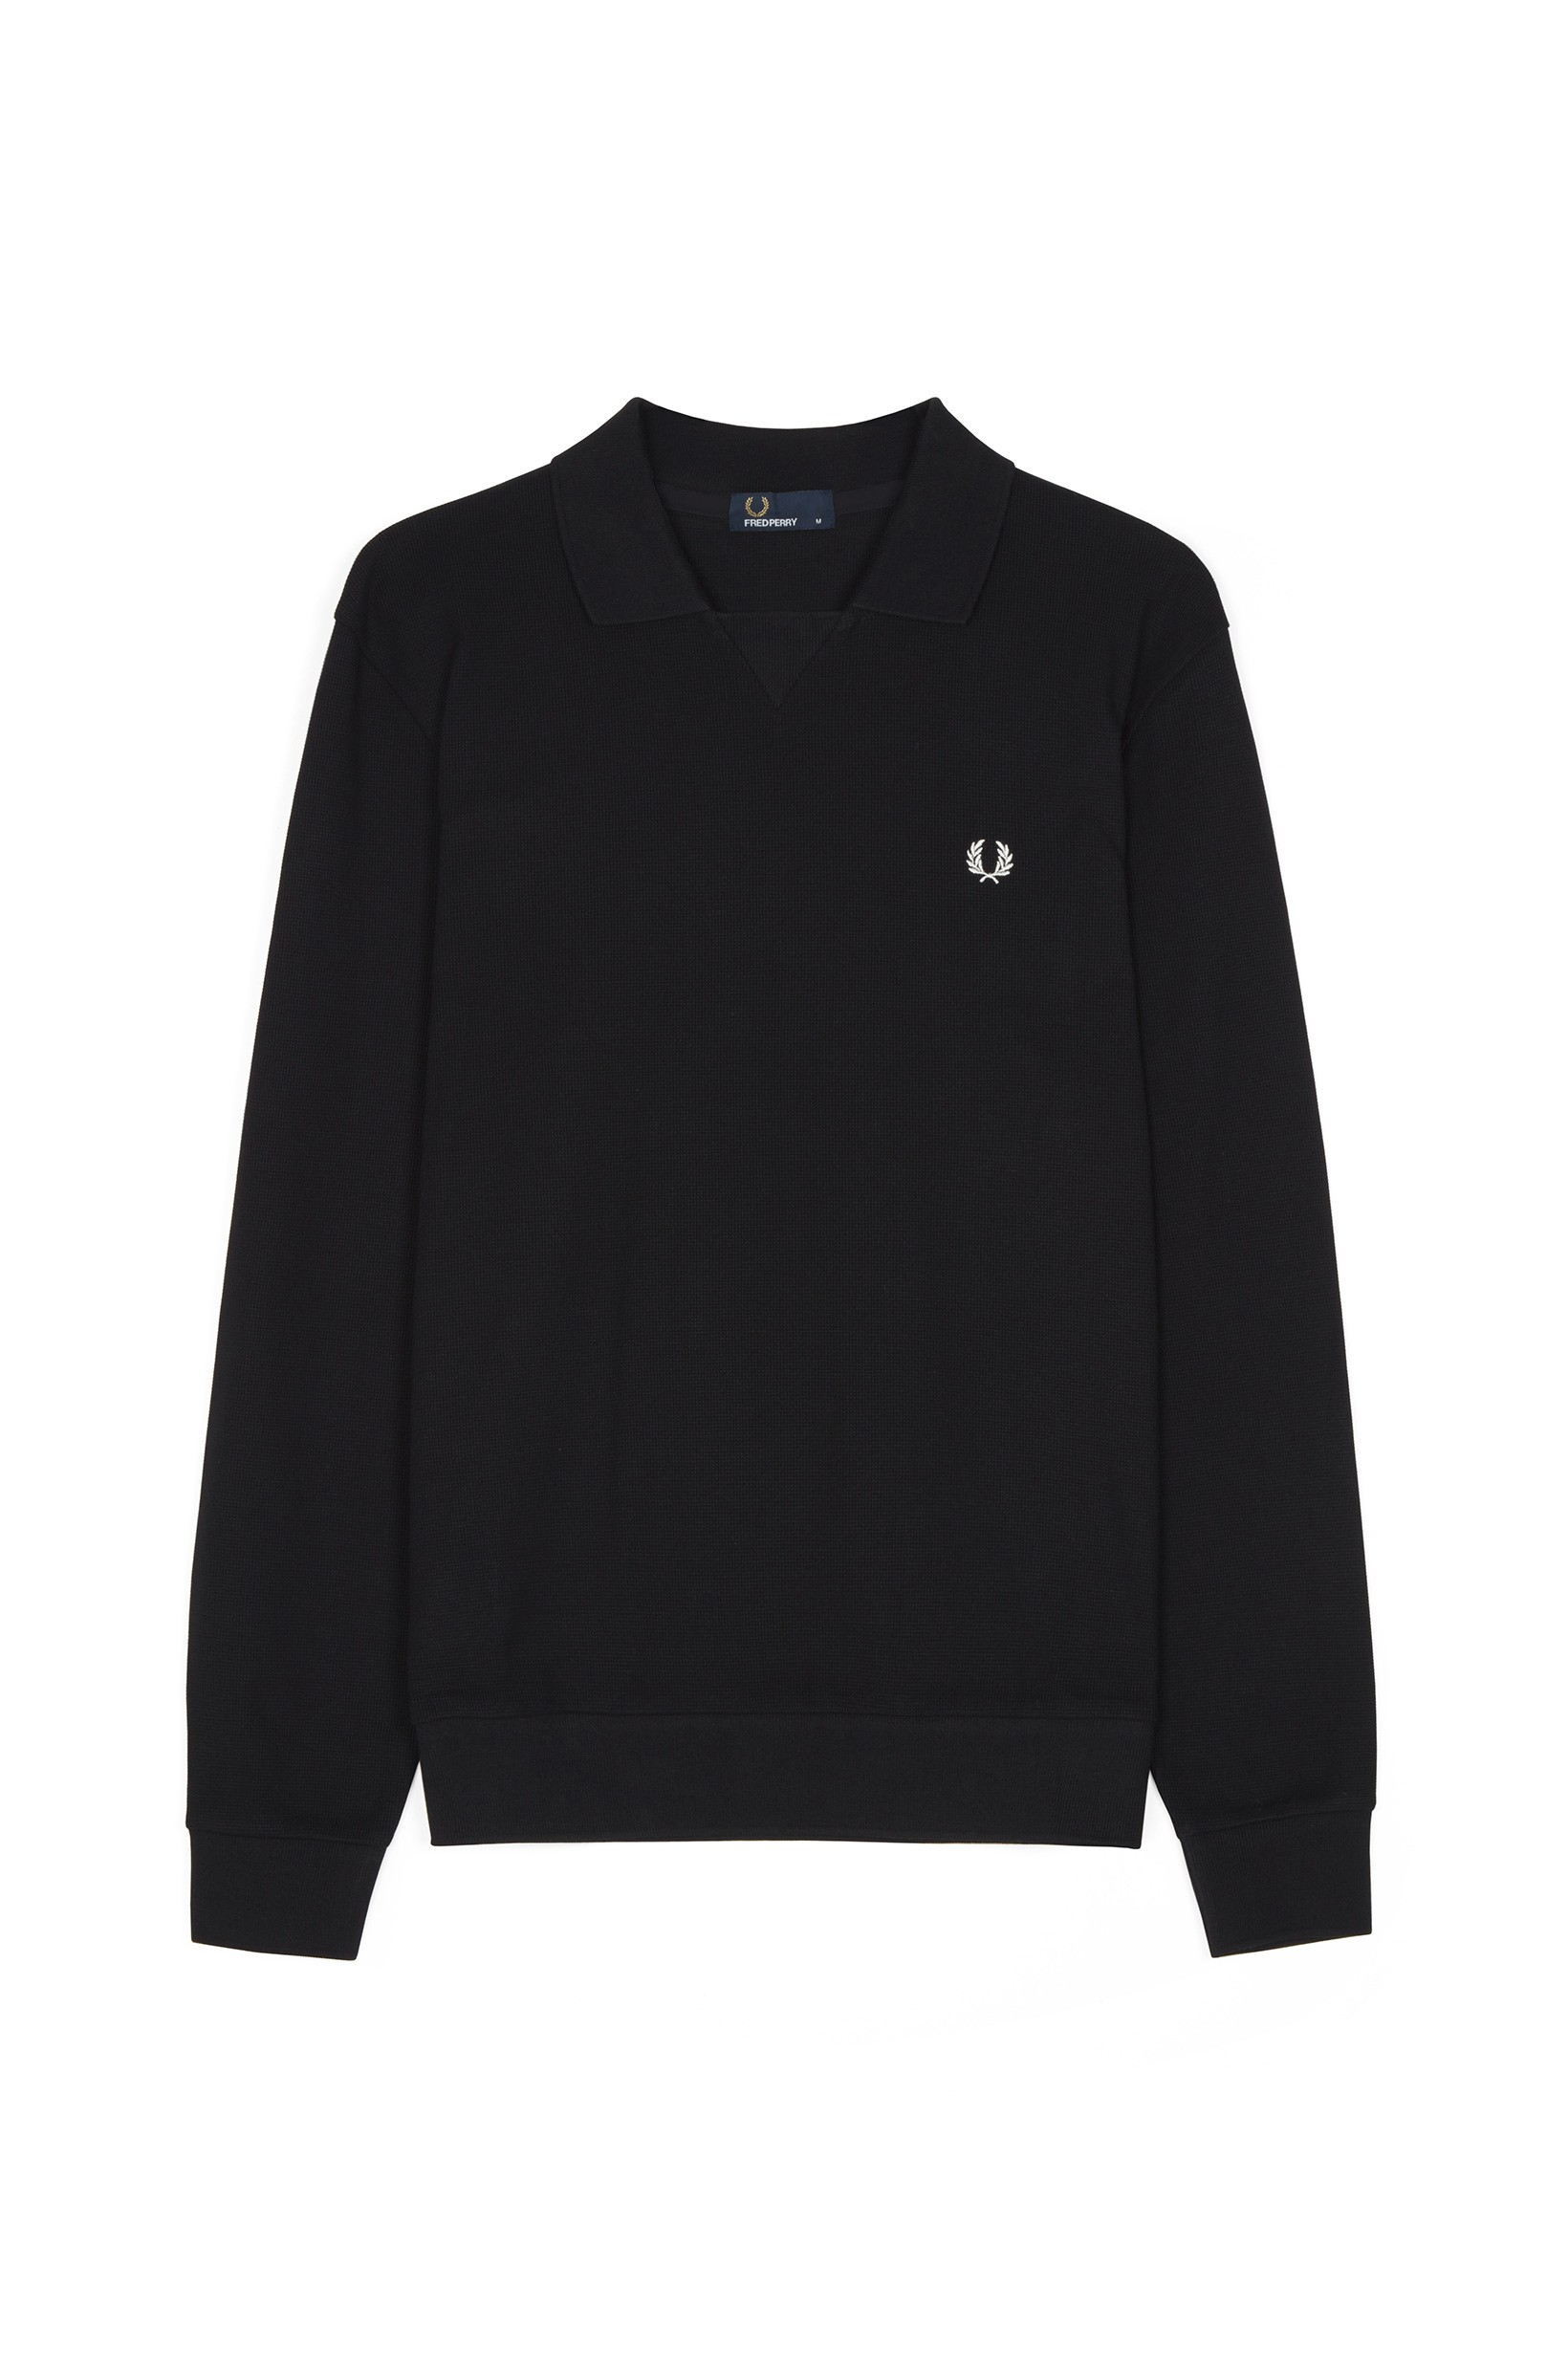 Fred Perry Black Waffle Textured Sweat Top